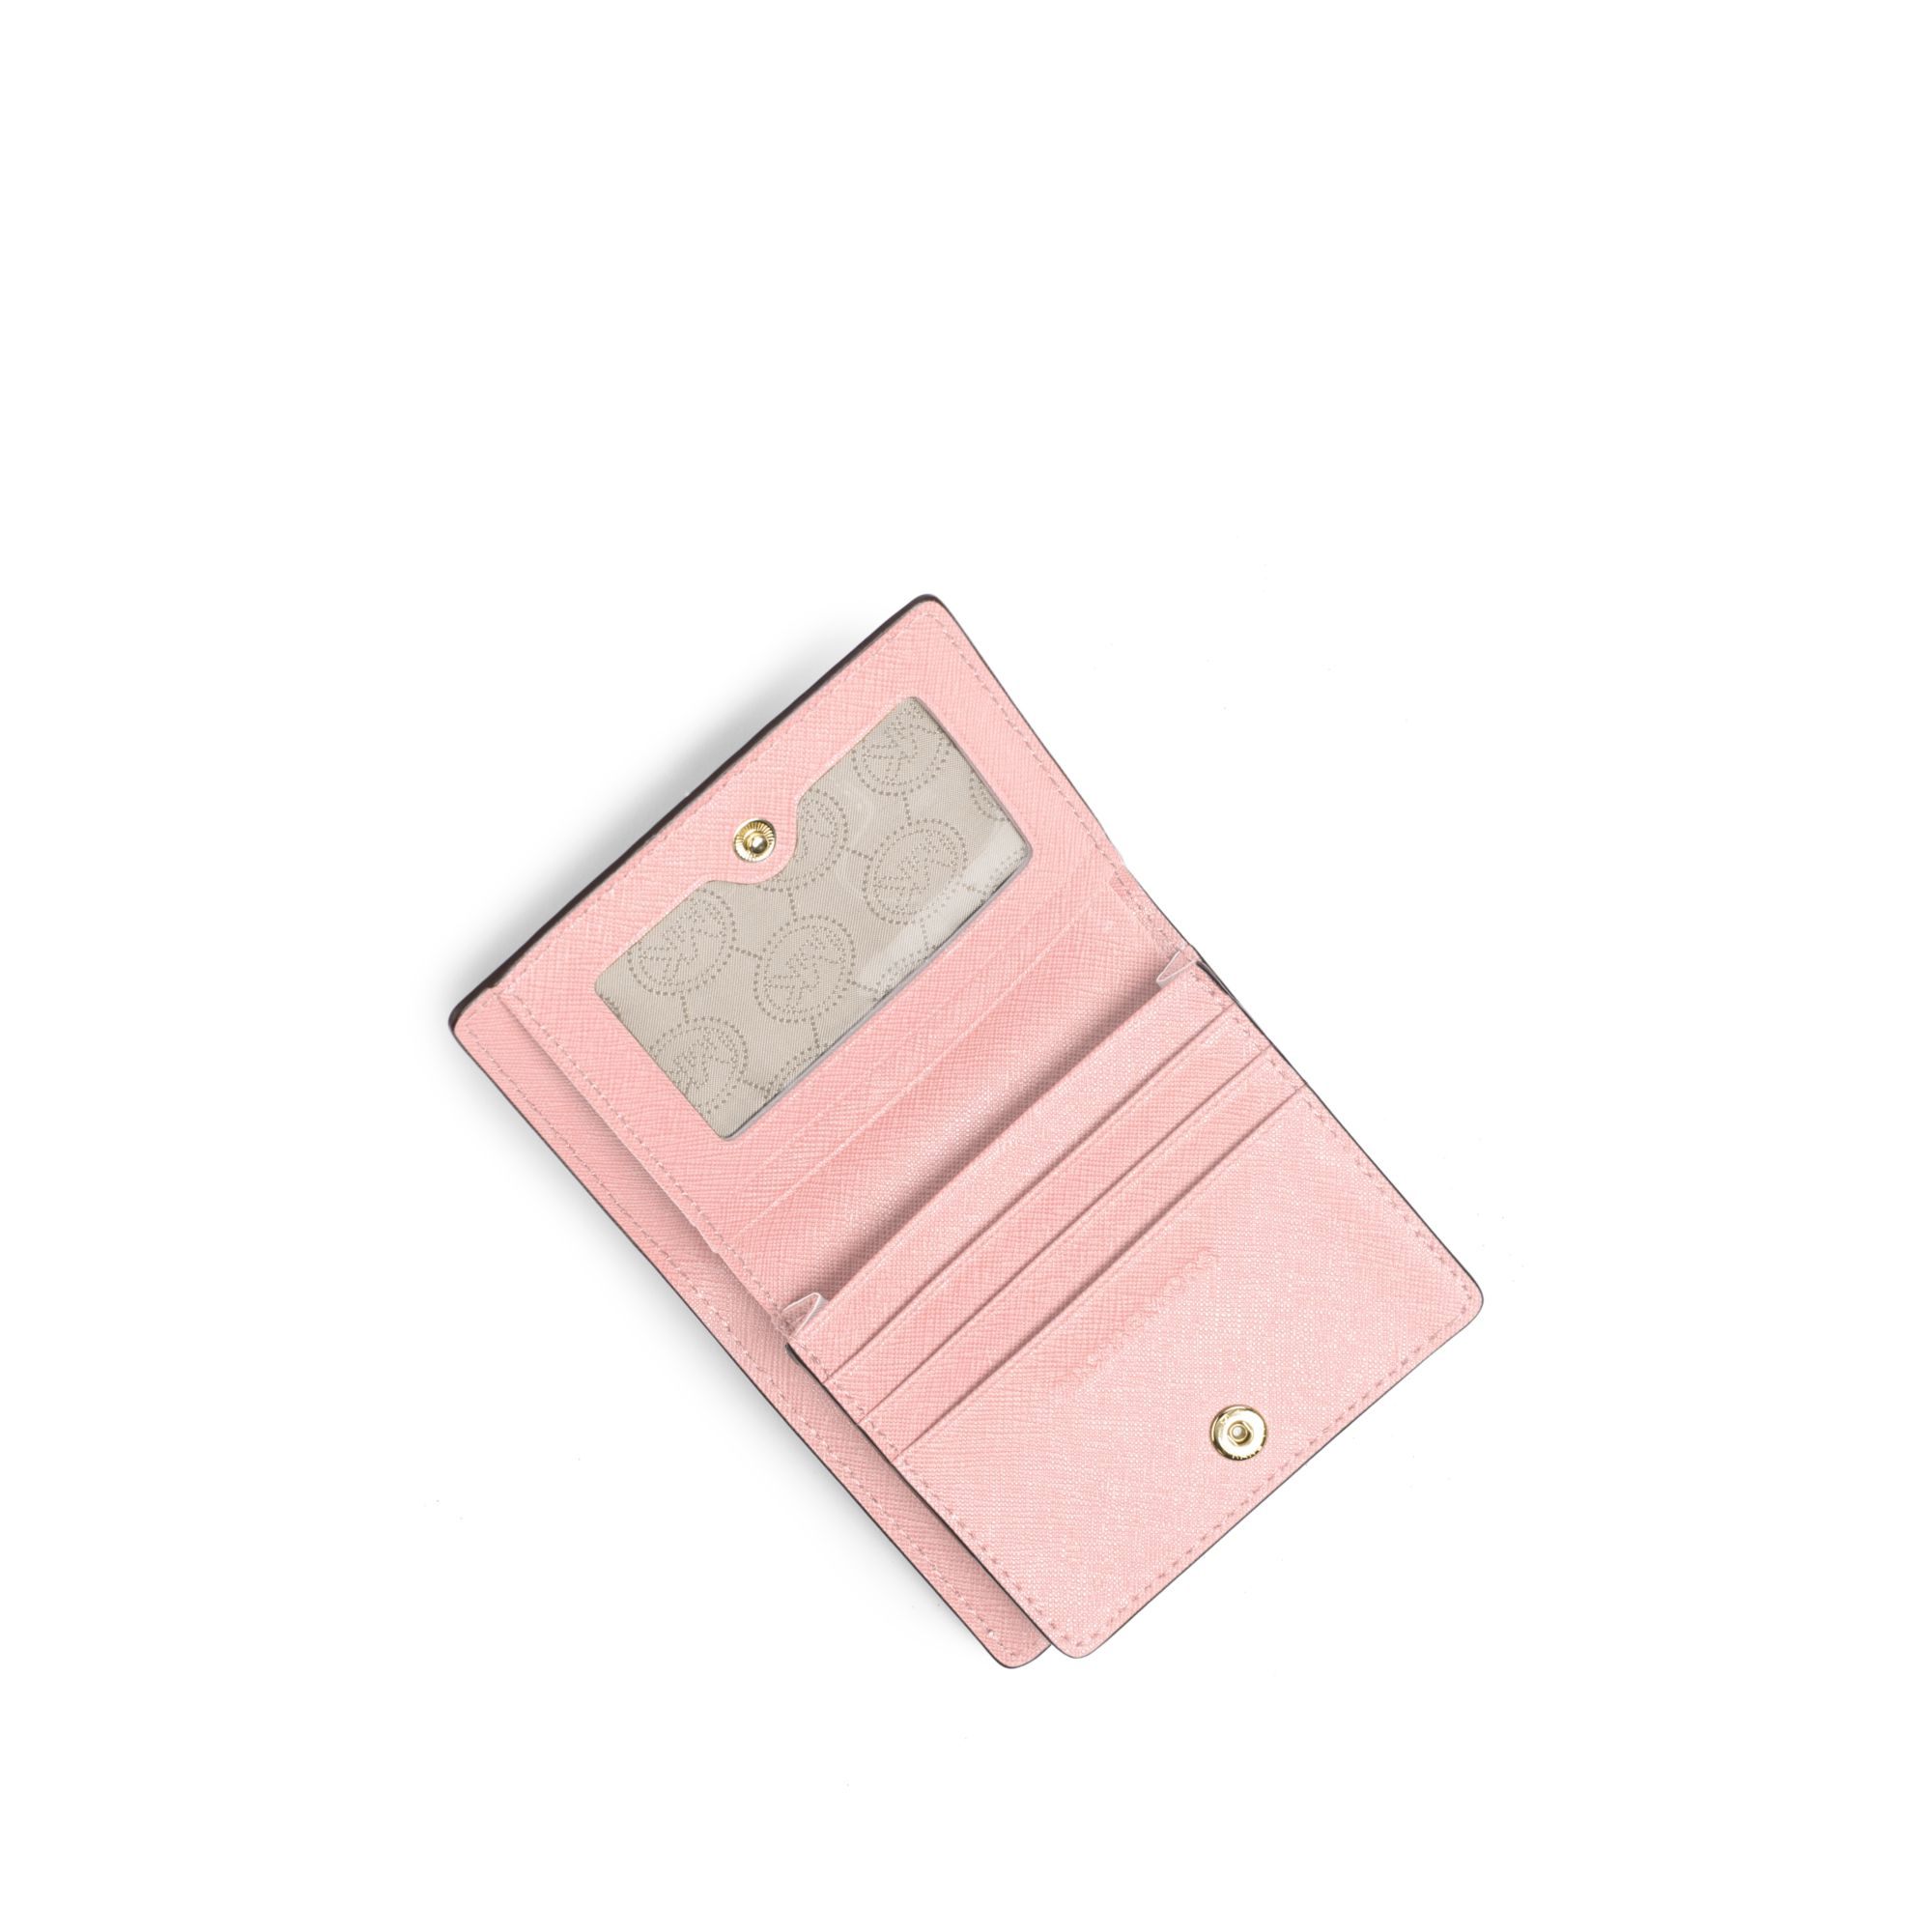 1fee58cb0f28 Michael Kors Travel Saffiano Leather Card Holder in Pink - Lyst